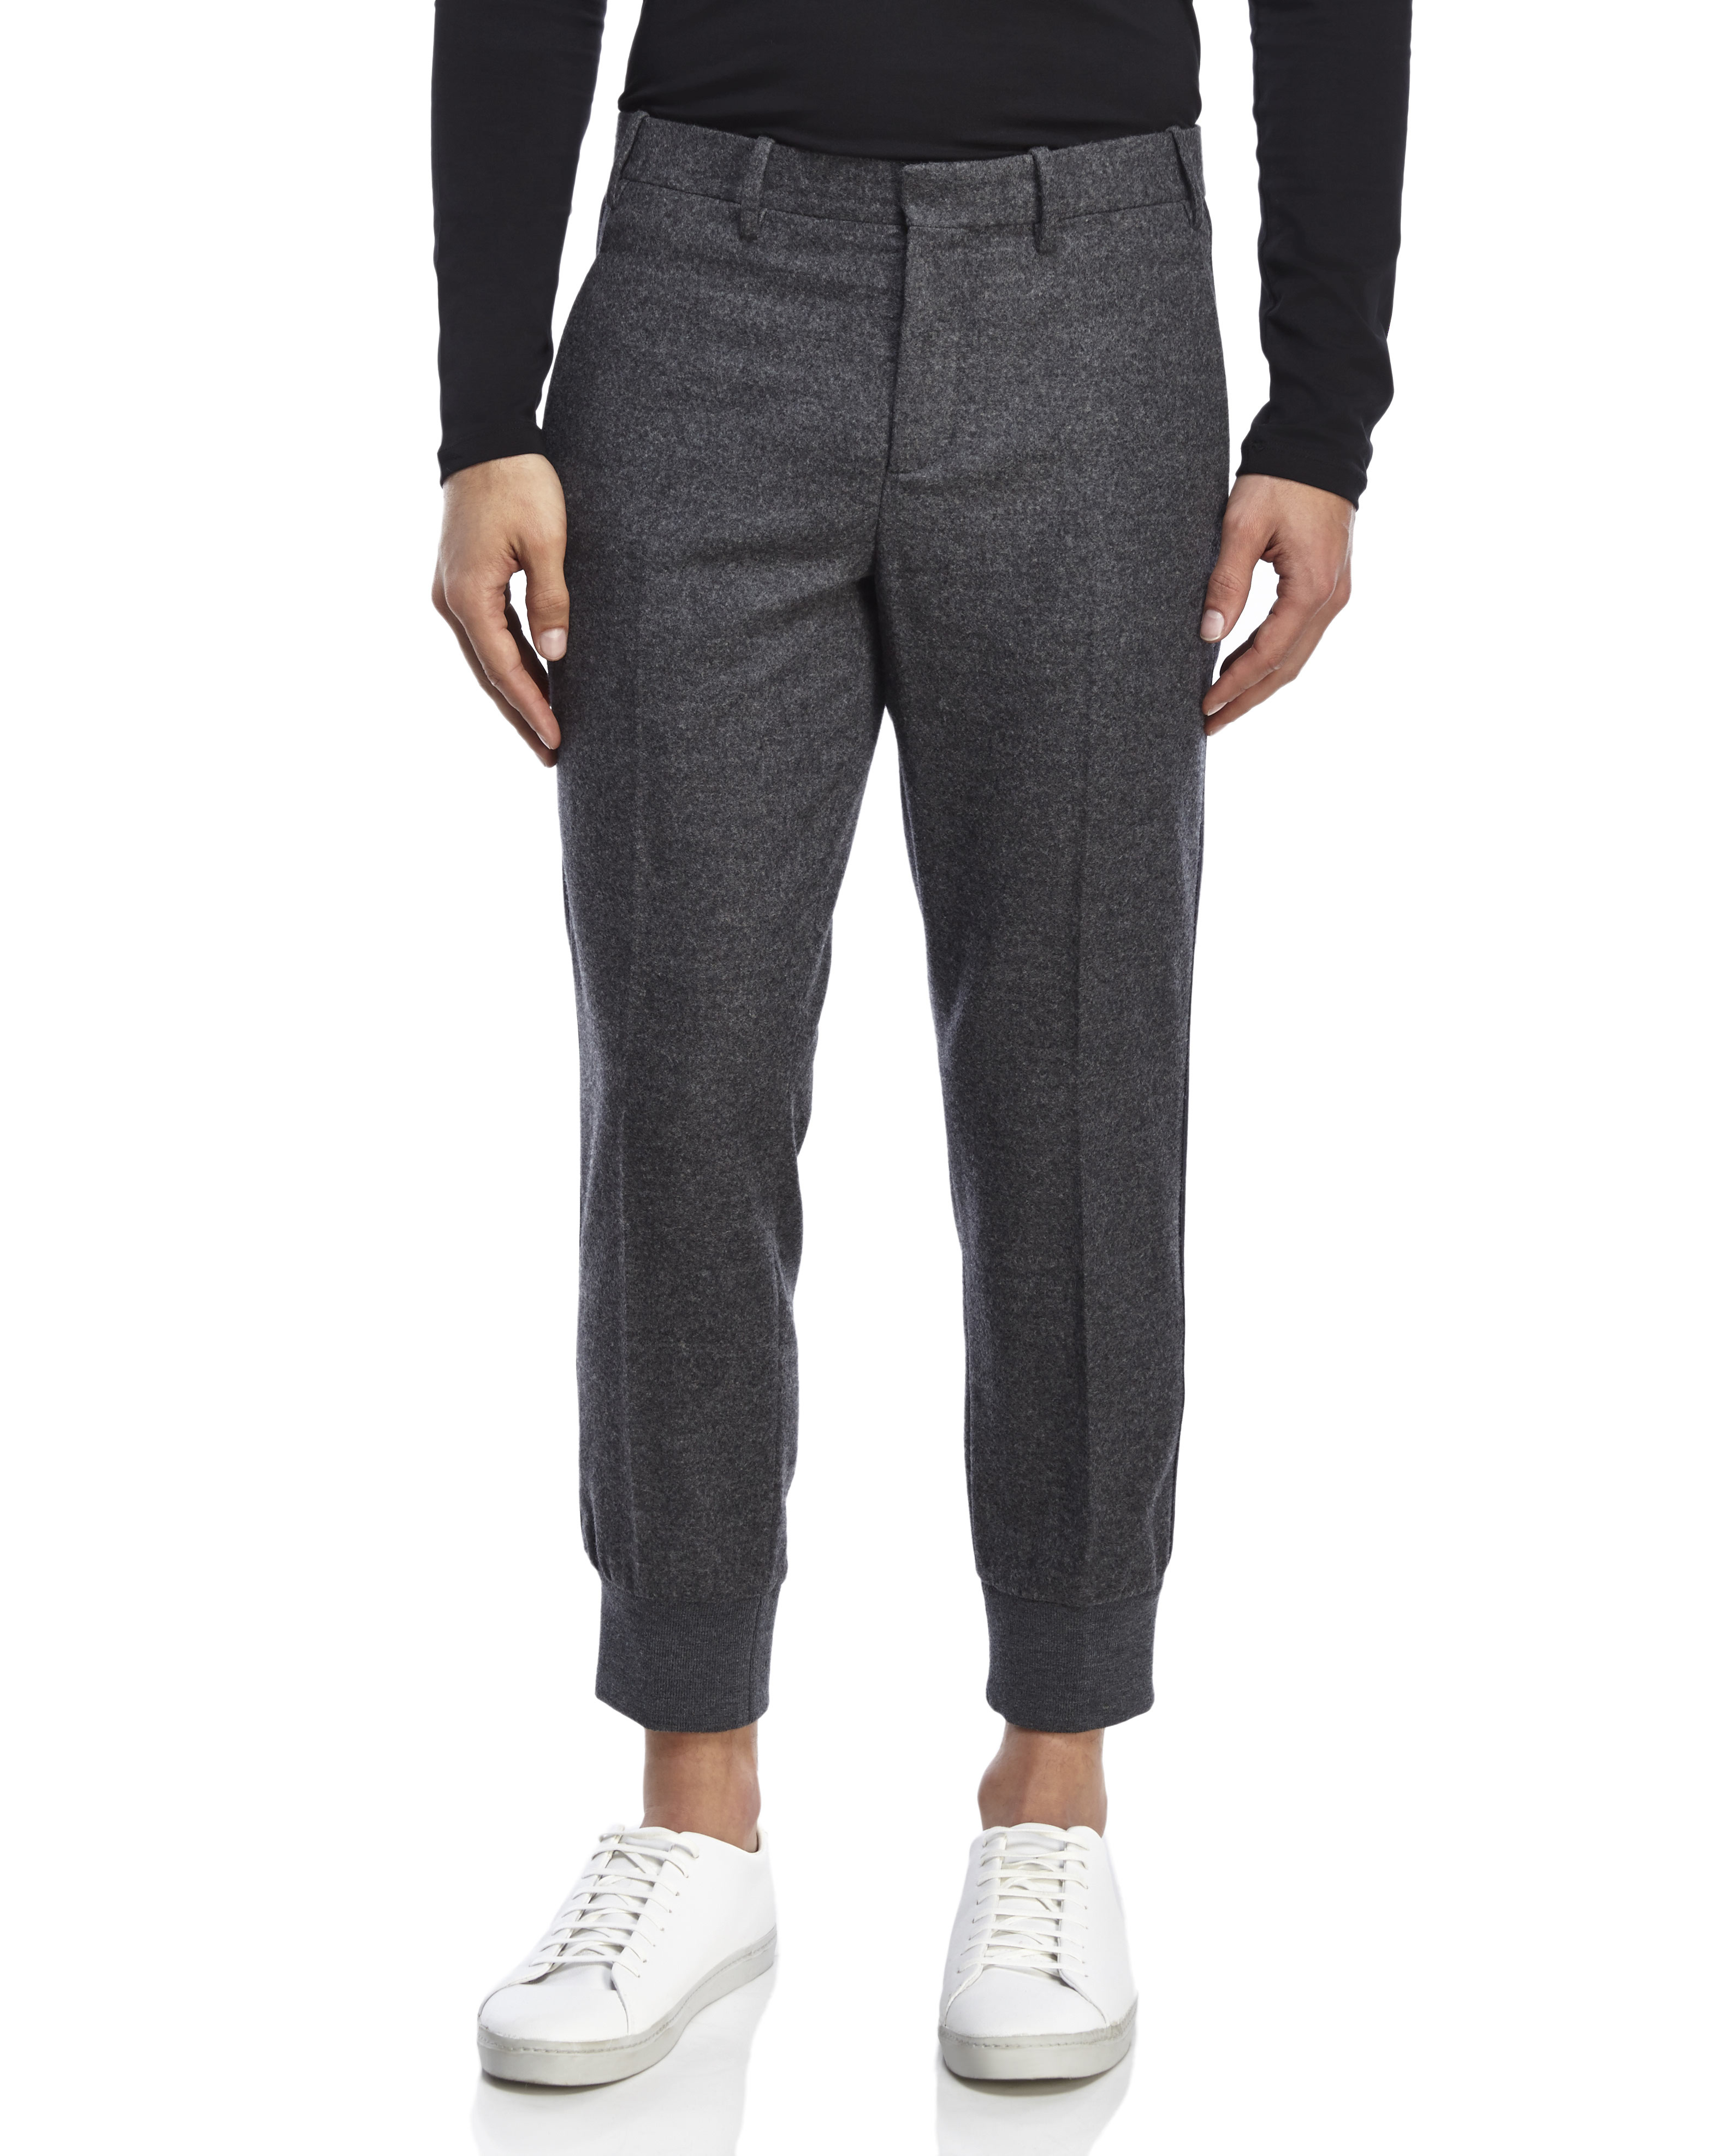 cropped tuxedo trousers - Black Neil Barrett Grey Outlet Store Online Free Shipping Newest Clearance Good Selling m94Bn